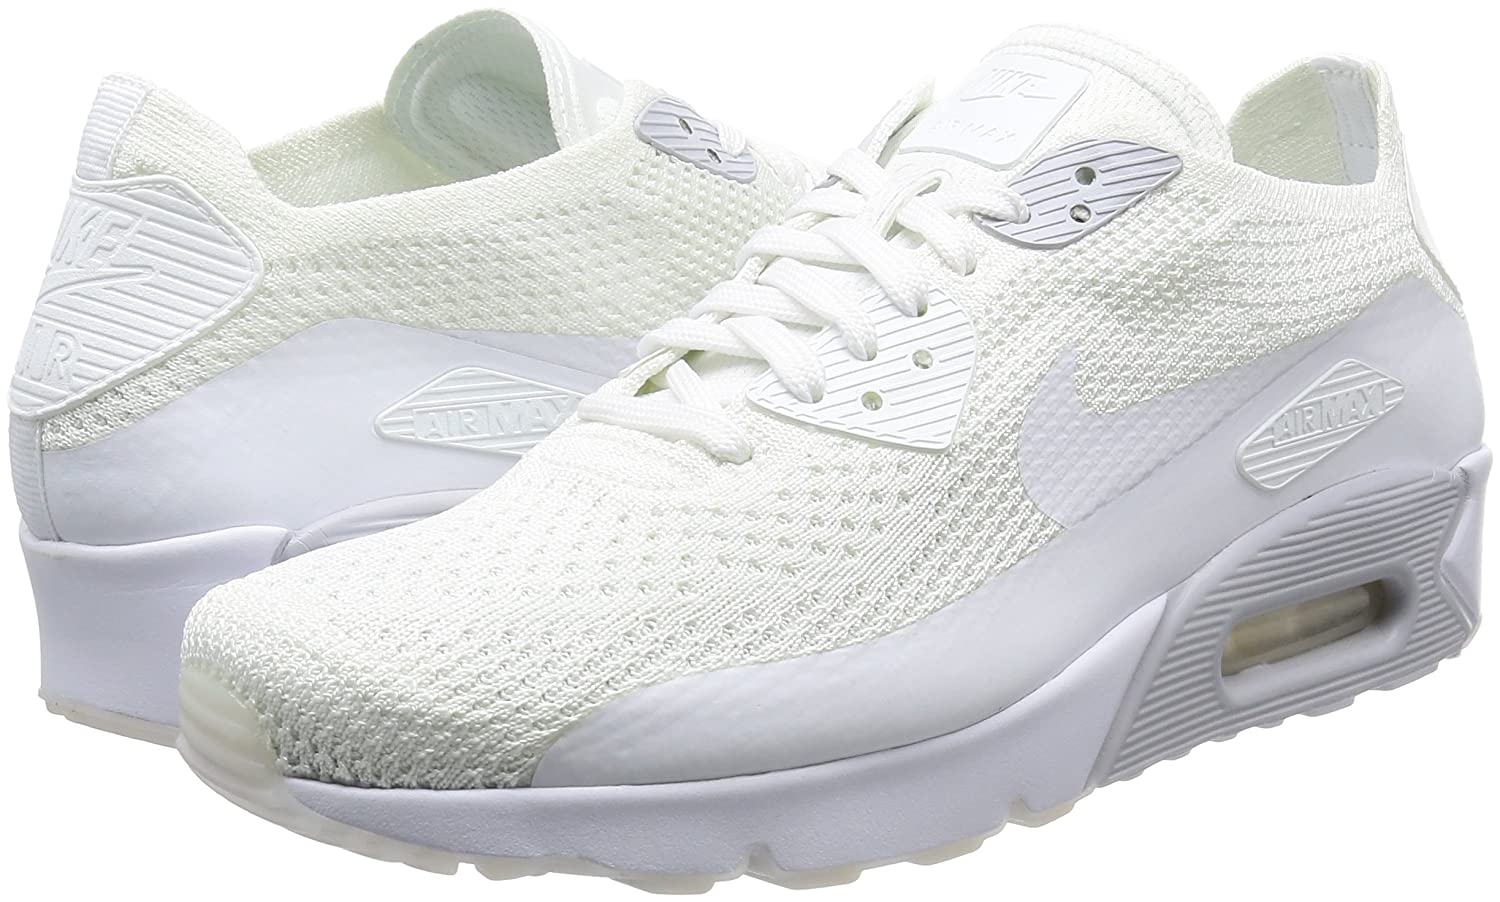 huge selection of a38ad 2b8d2 Amazon.com   Nike AIR MAX 90 Ultra 2.0 Flyknit White Pure Platinum Mens  Running 875943 101   Fashion Sneakers